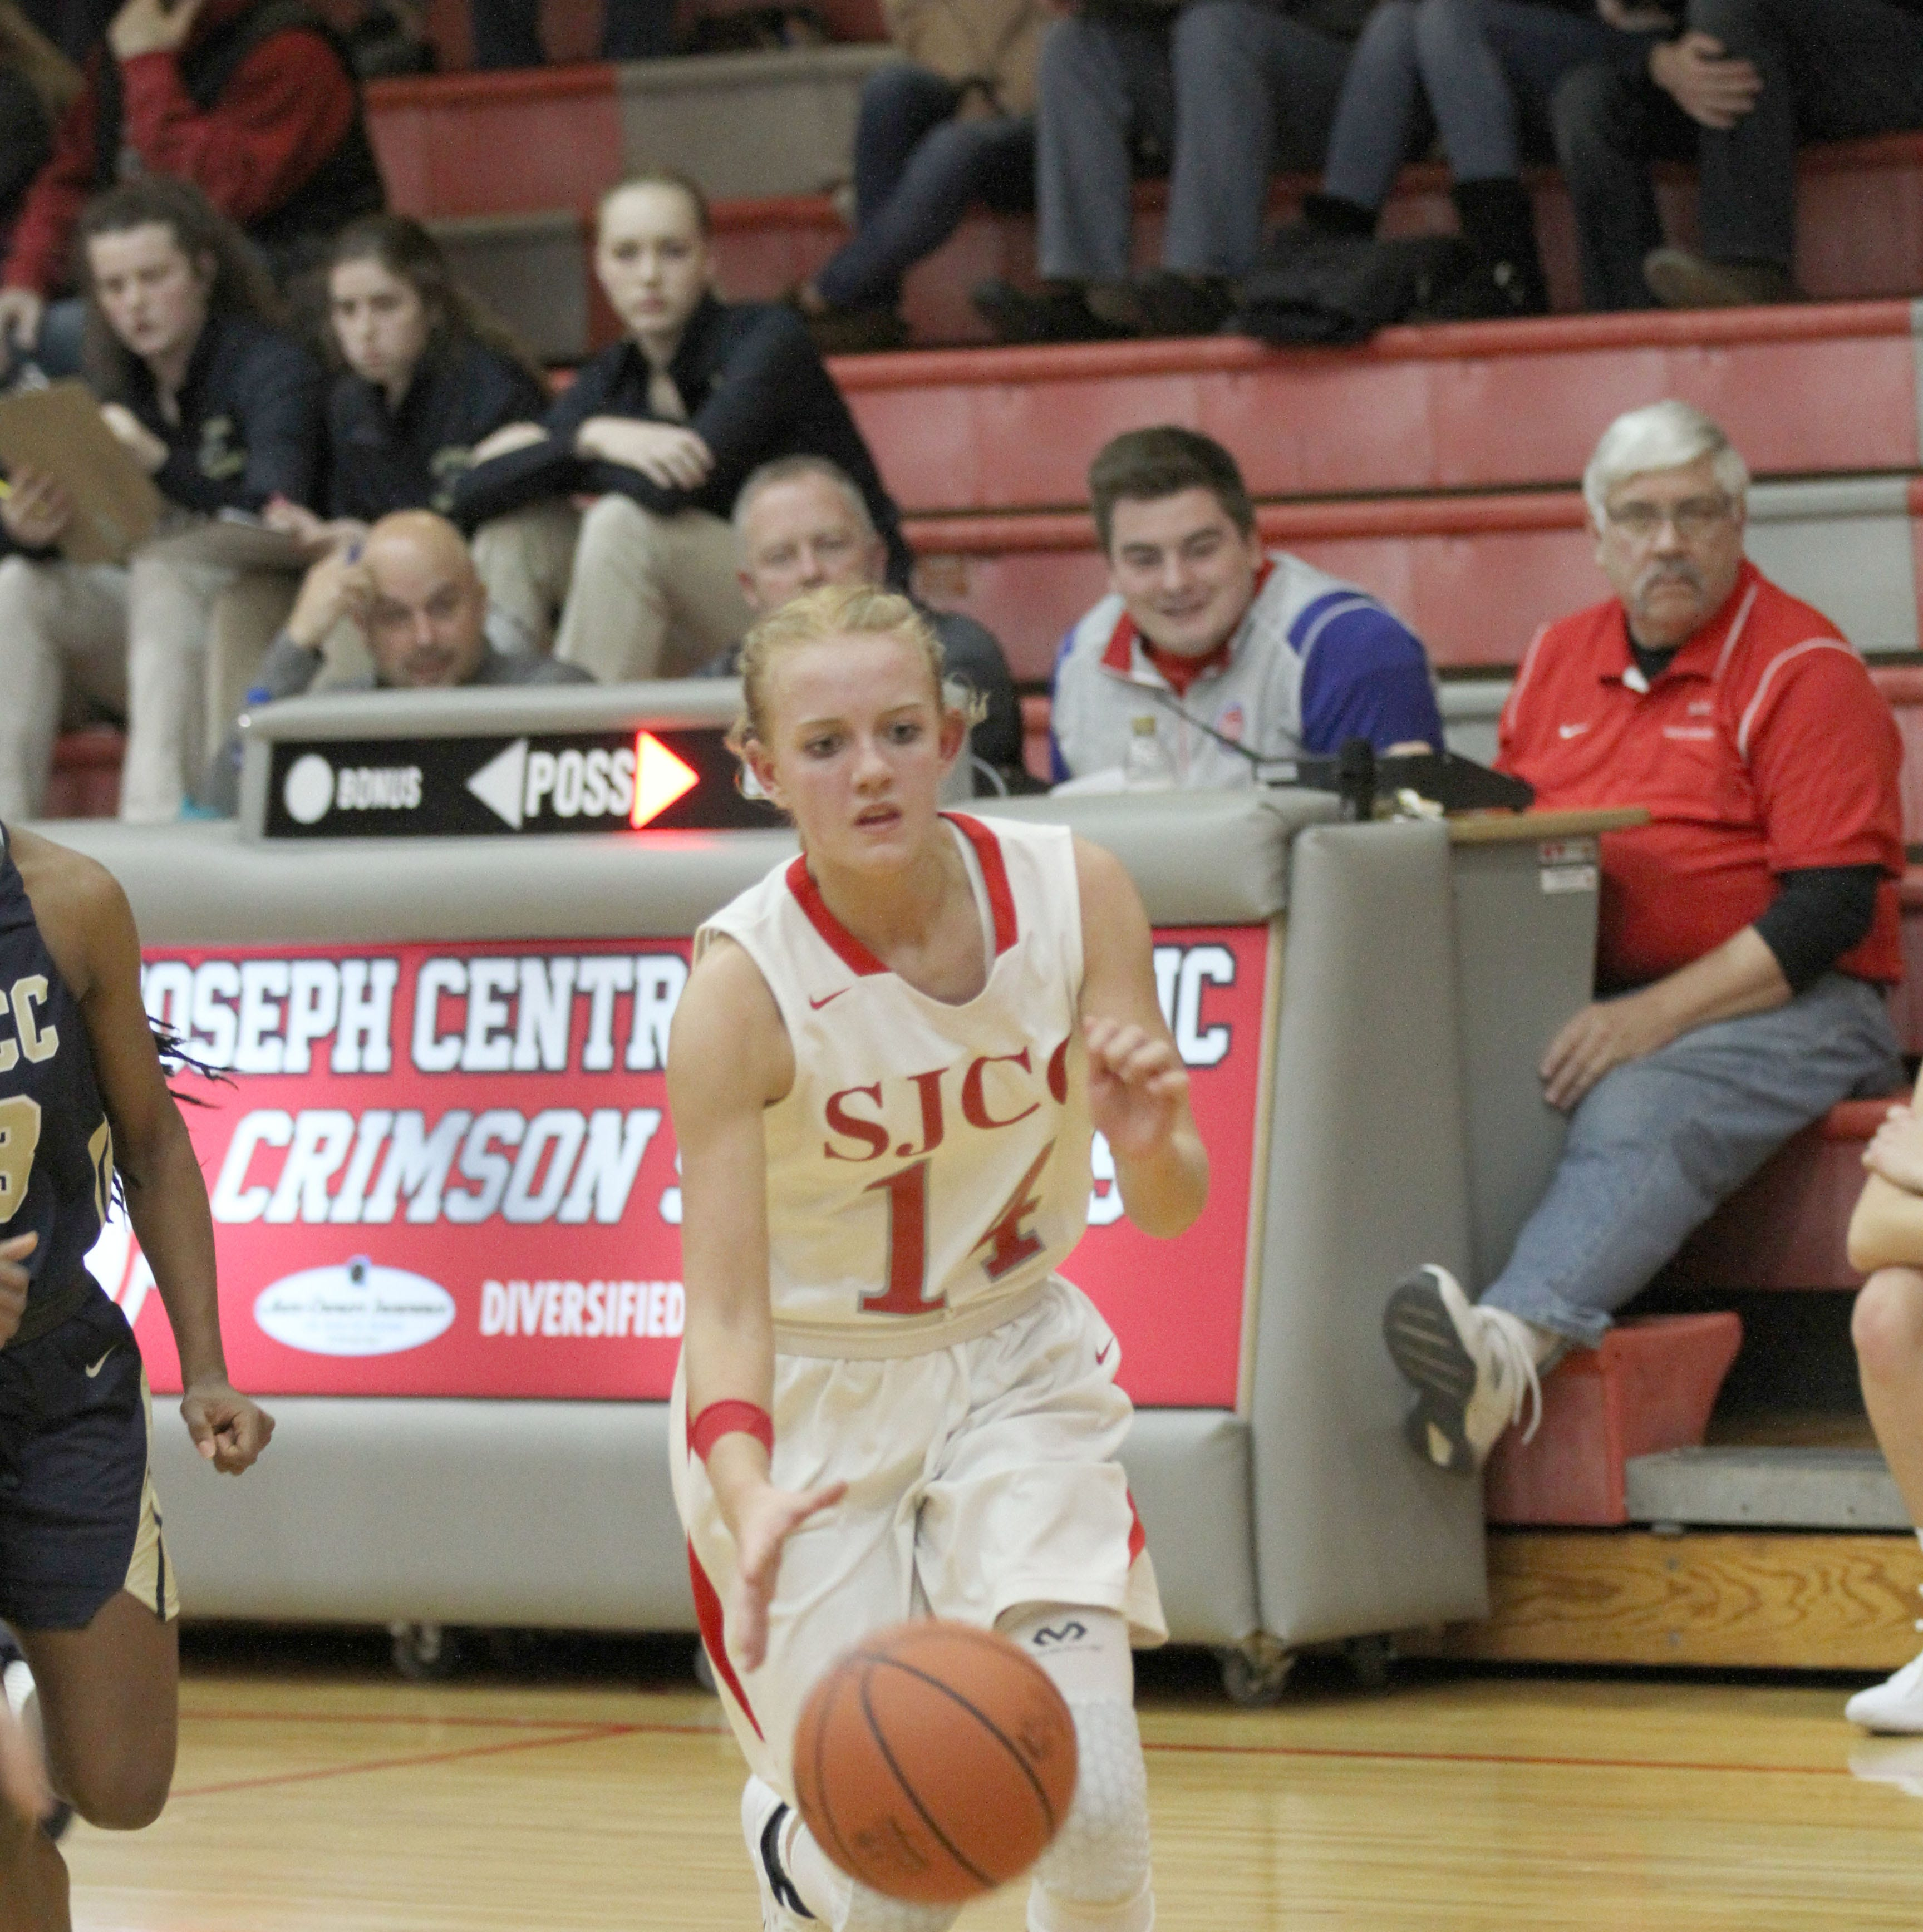 Crimson Streaks fall 59-48 to visiting Panthers